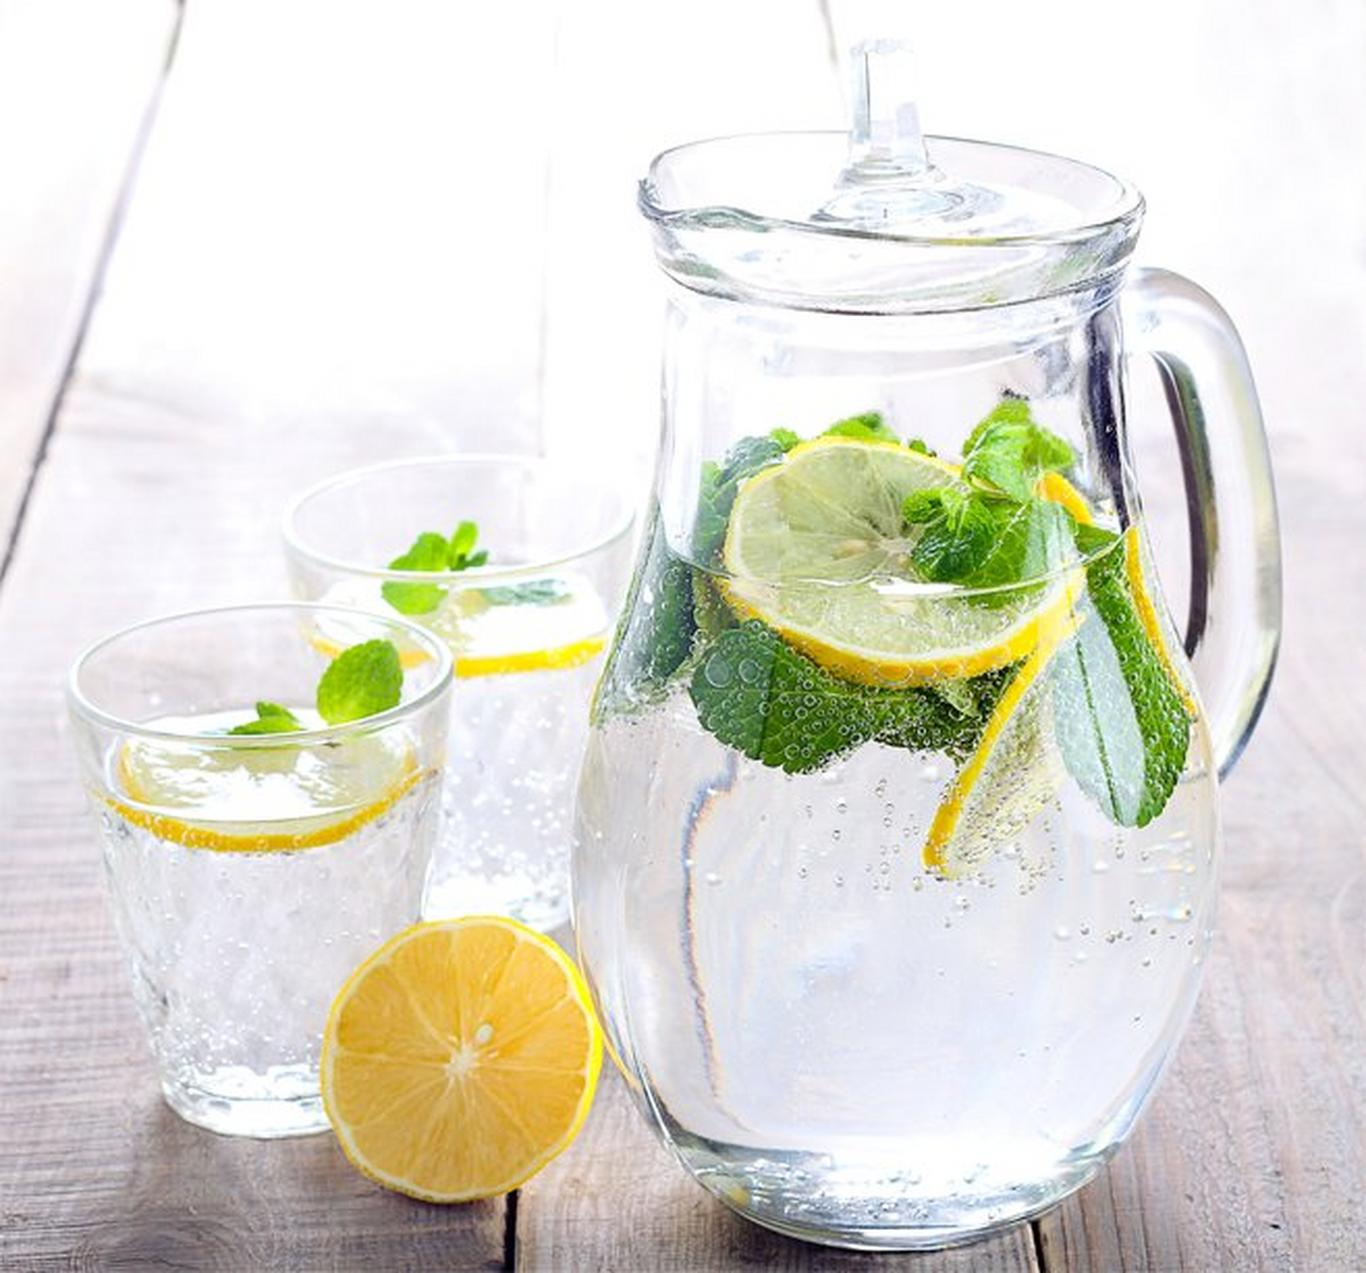 Stay hydrated by drinking 8-10 glasses of pure spring water per day to help decrease the appearance of dark circles.